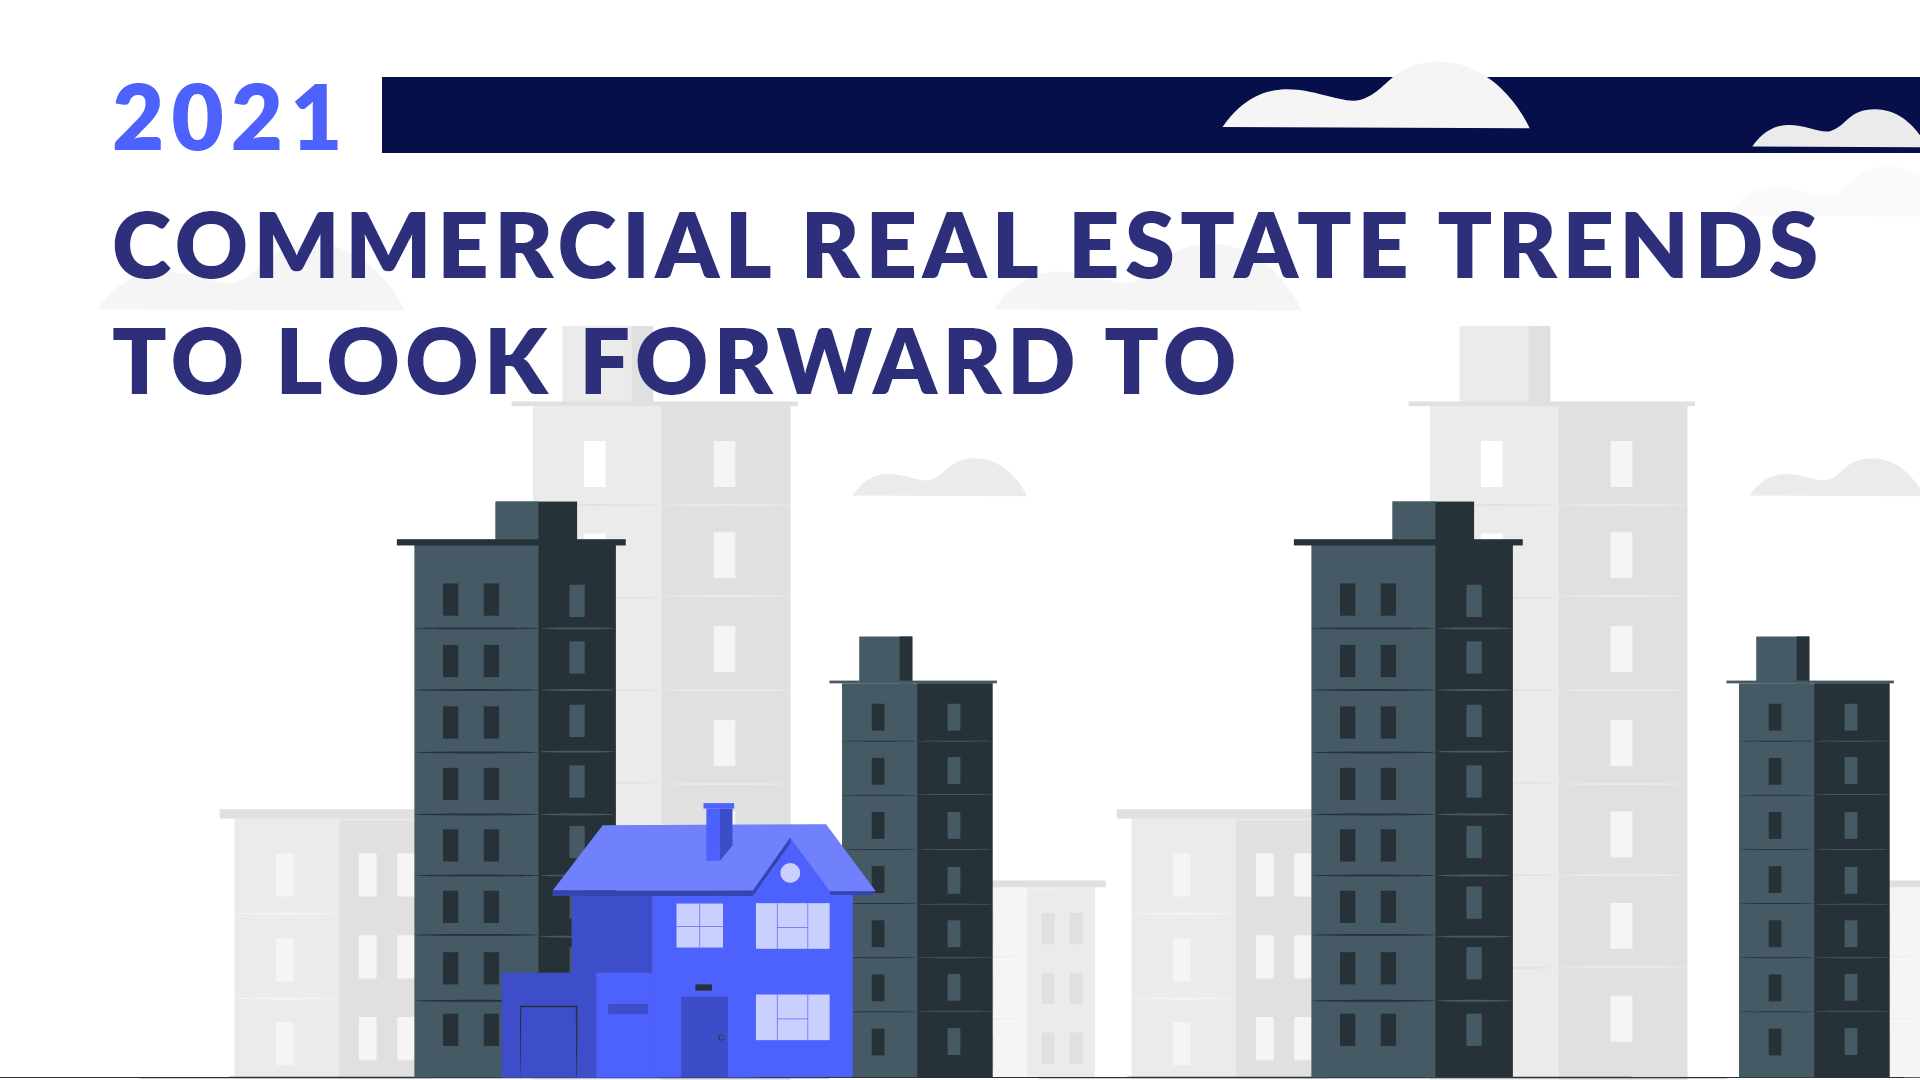 Commercial Real Estate Trends in 2021